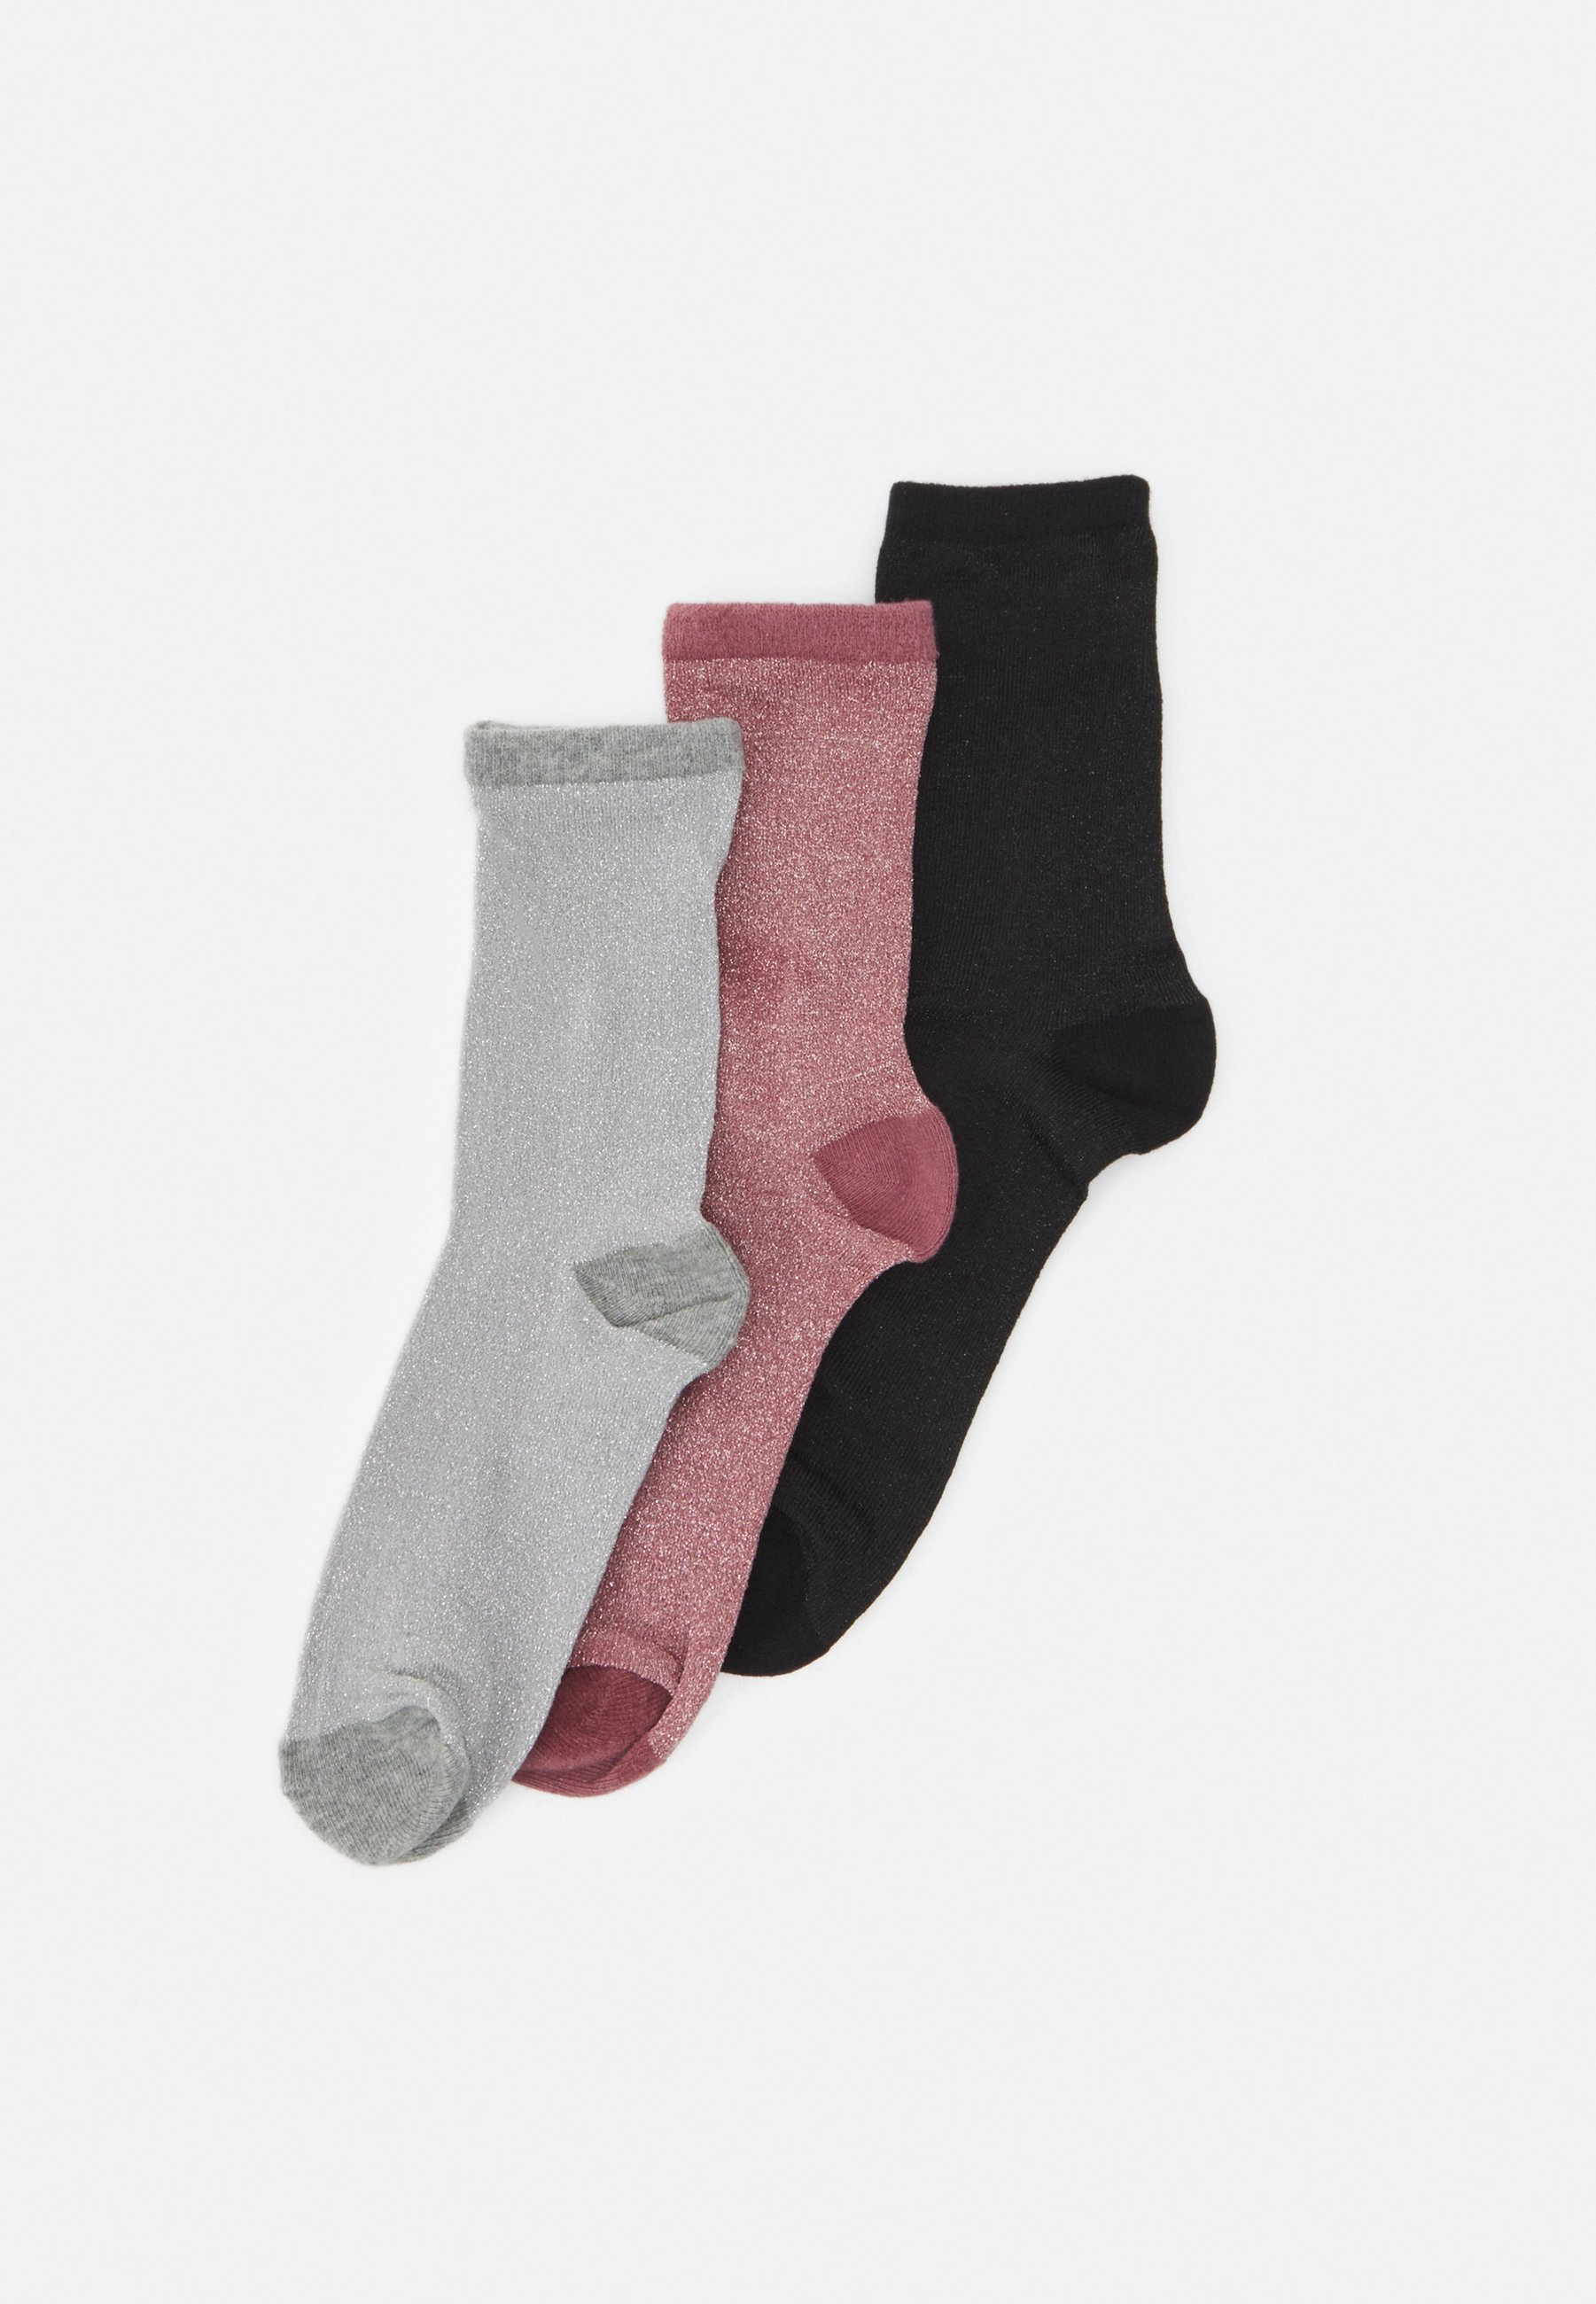 Femme DINA SOLID MIX 3 PACK - Chaussettes